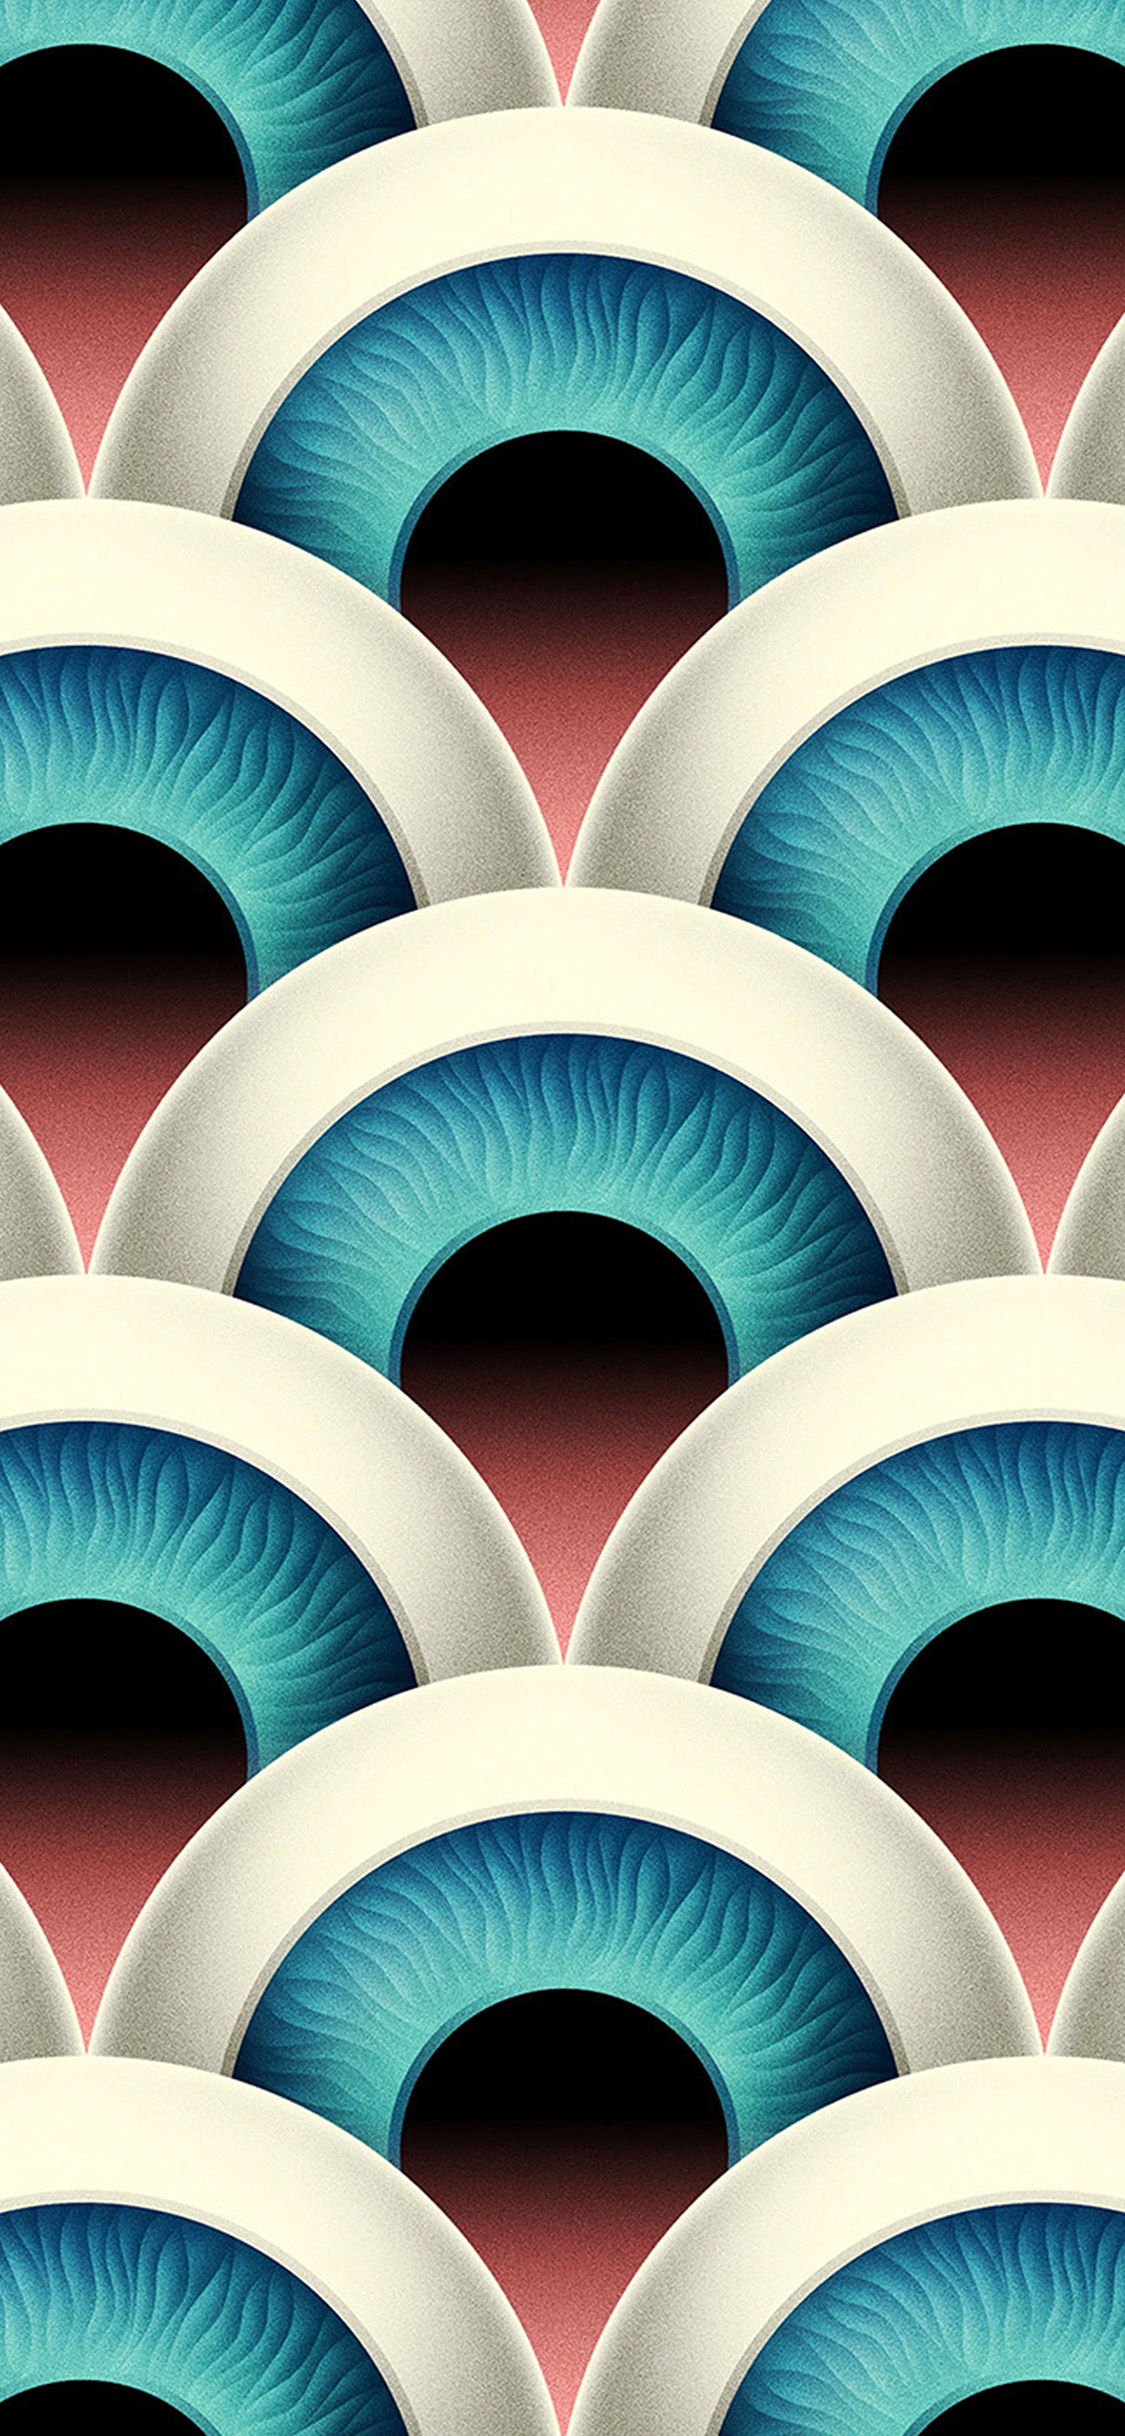 iPhonexpapers.com-Apple-iPhone-wallpaper-vz57-eye-duplicate-pattern-background